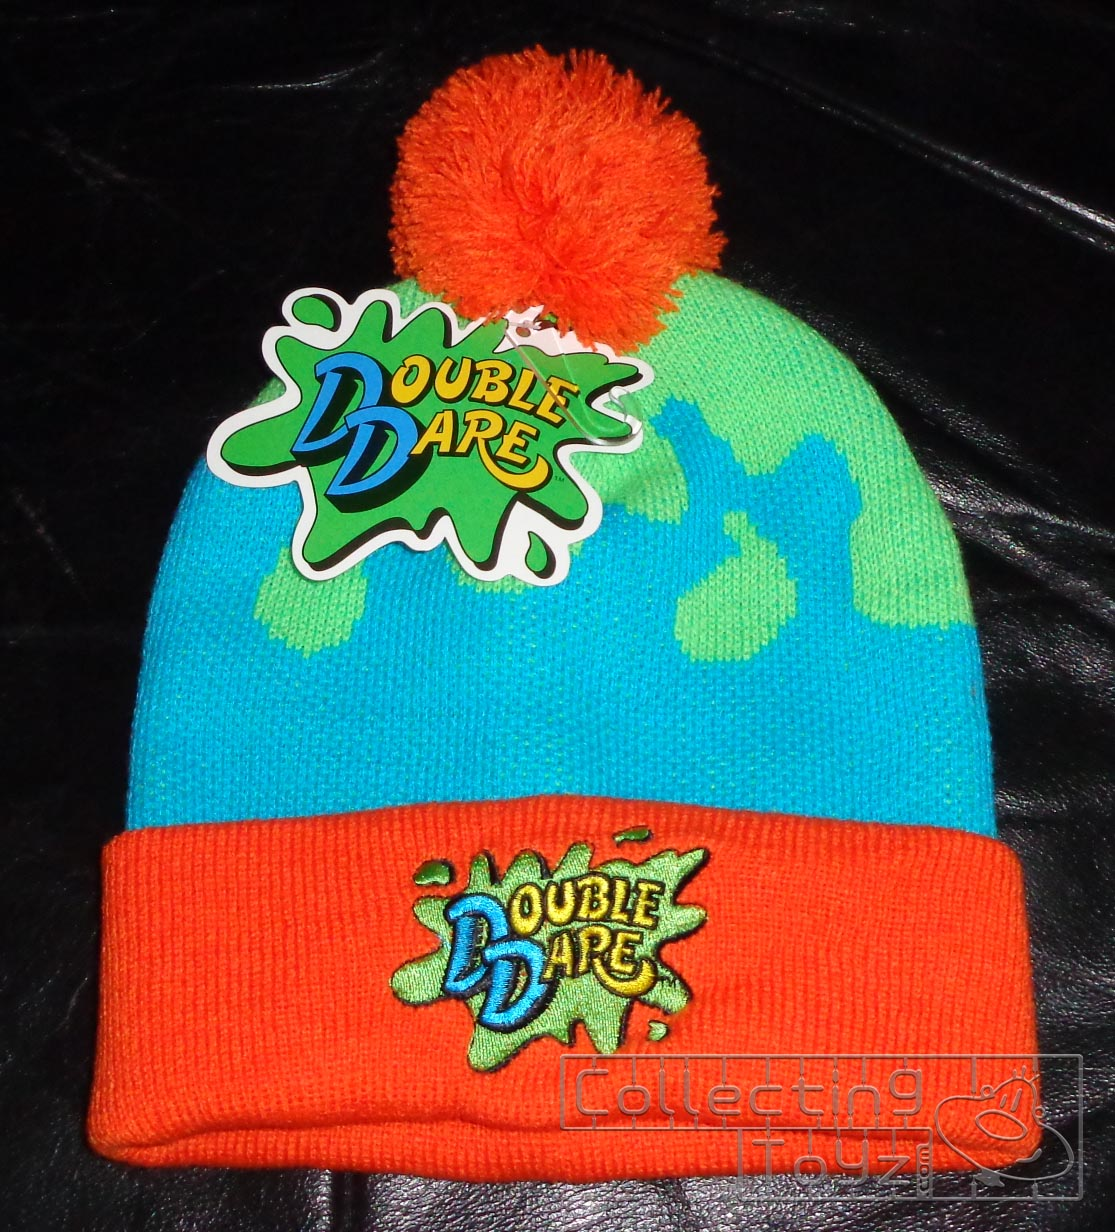 44fd351ec57 Next is the Doube Dare Knit Winter Hat or Beanie.